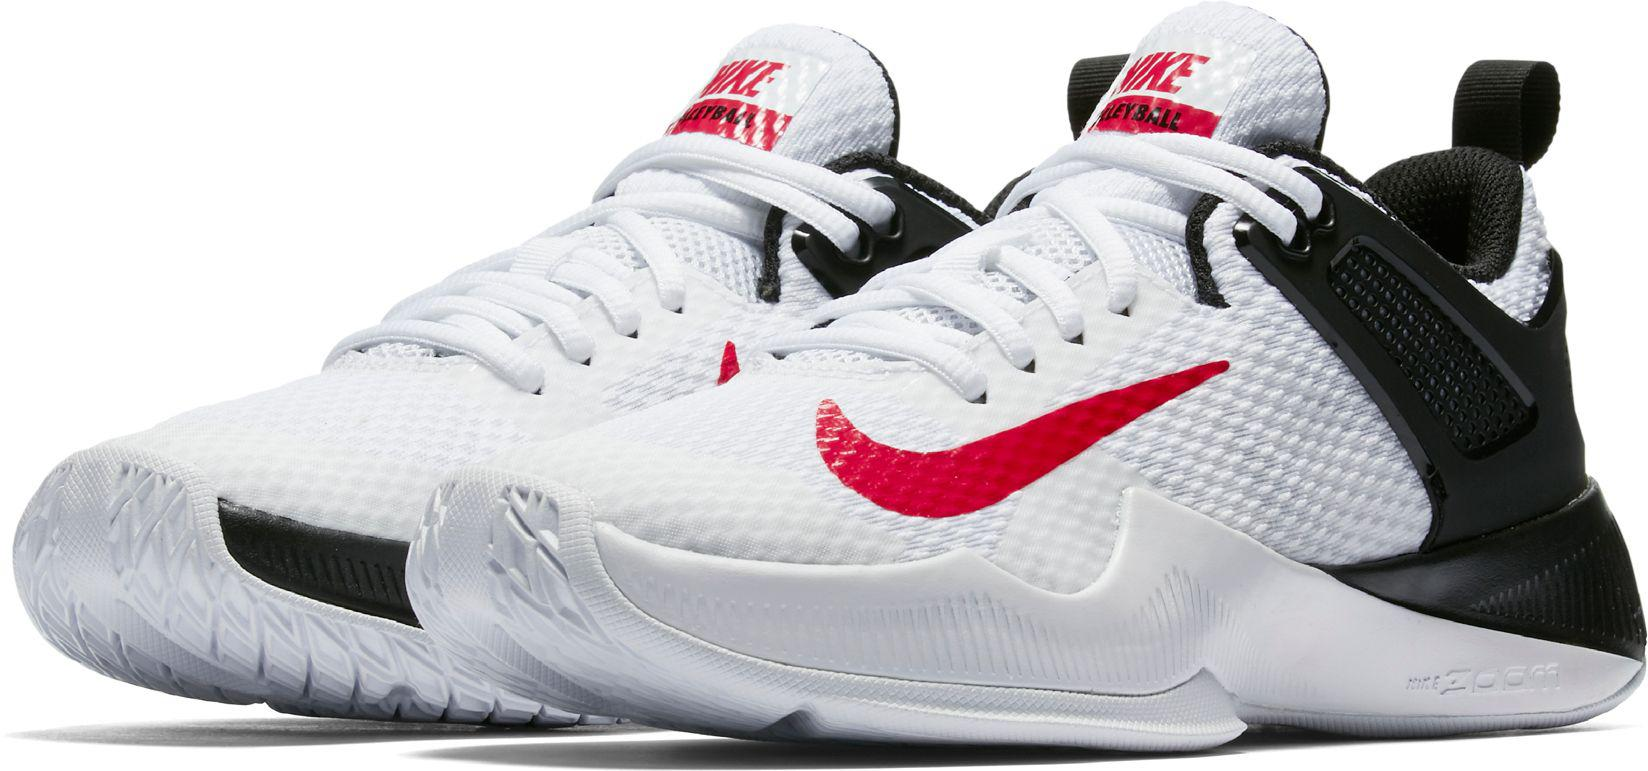 883e5bbd4099b Nike - Multicolor Air Zoom Hyperace Volleyball Shoes for Men - Lyst